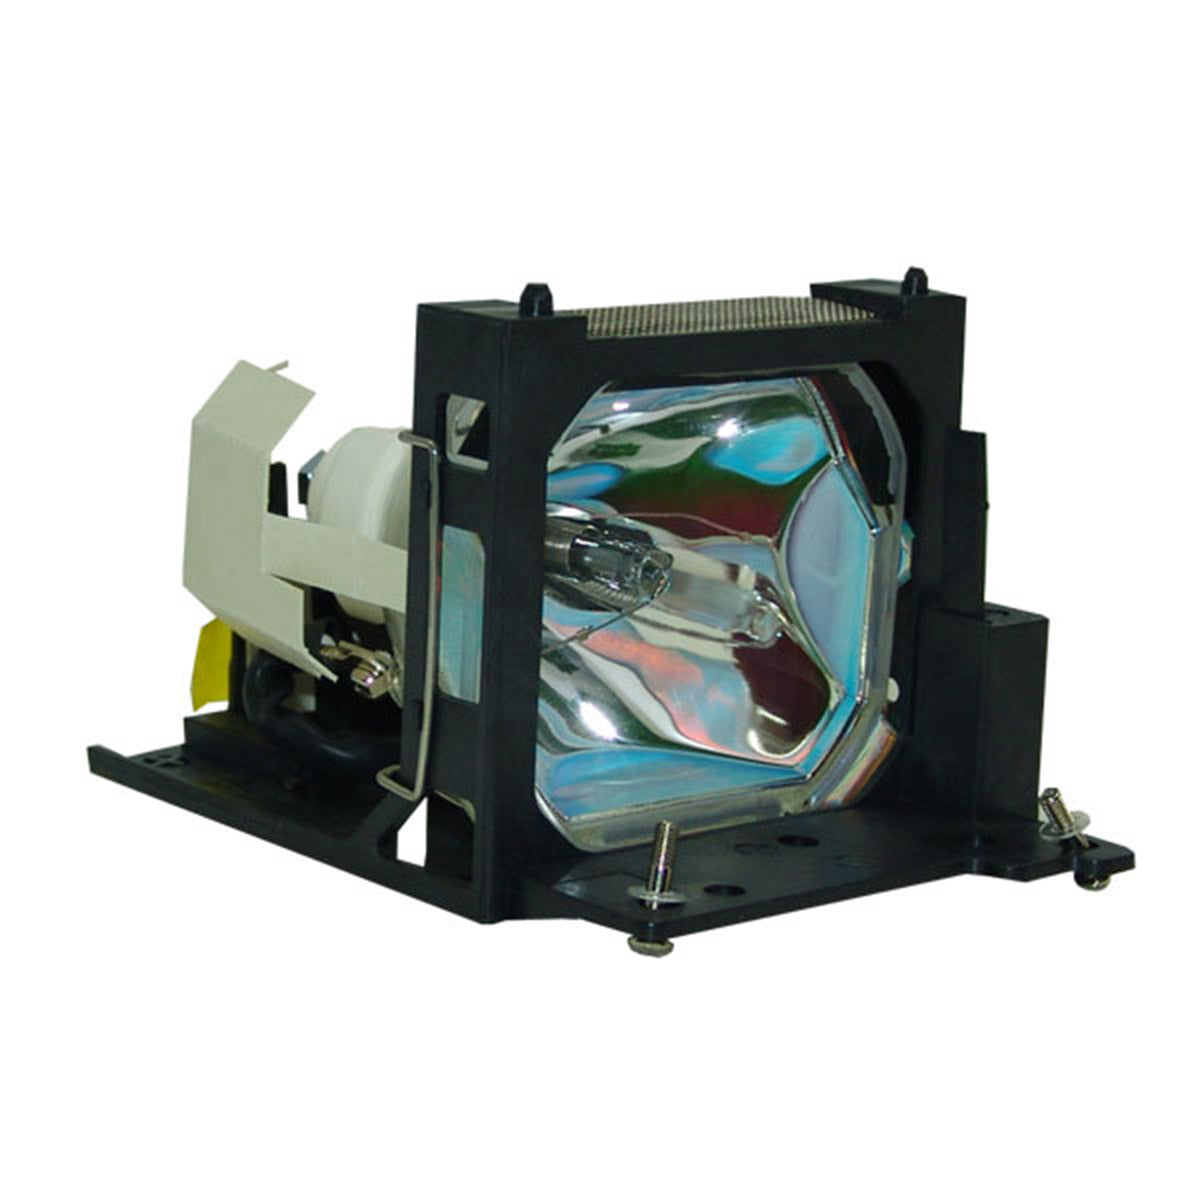 3M 78-6969-9464-5 Compatible Projector Lamp Module